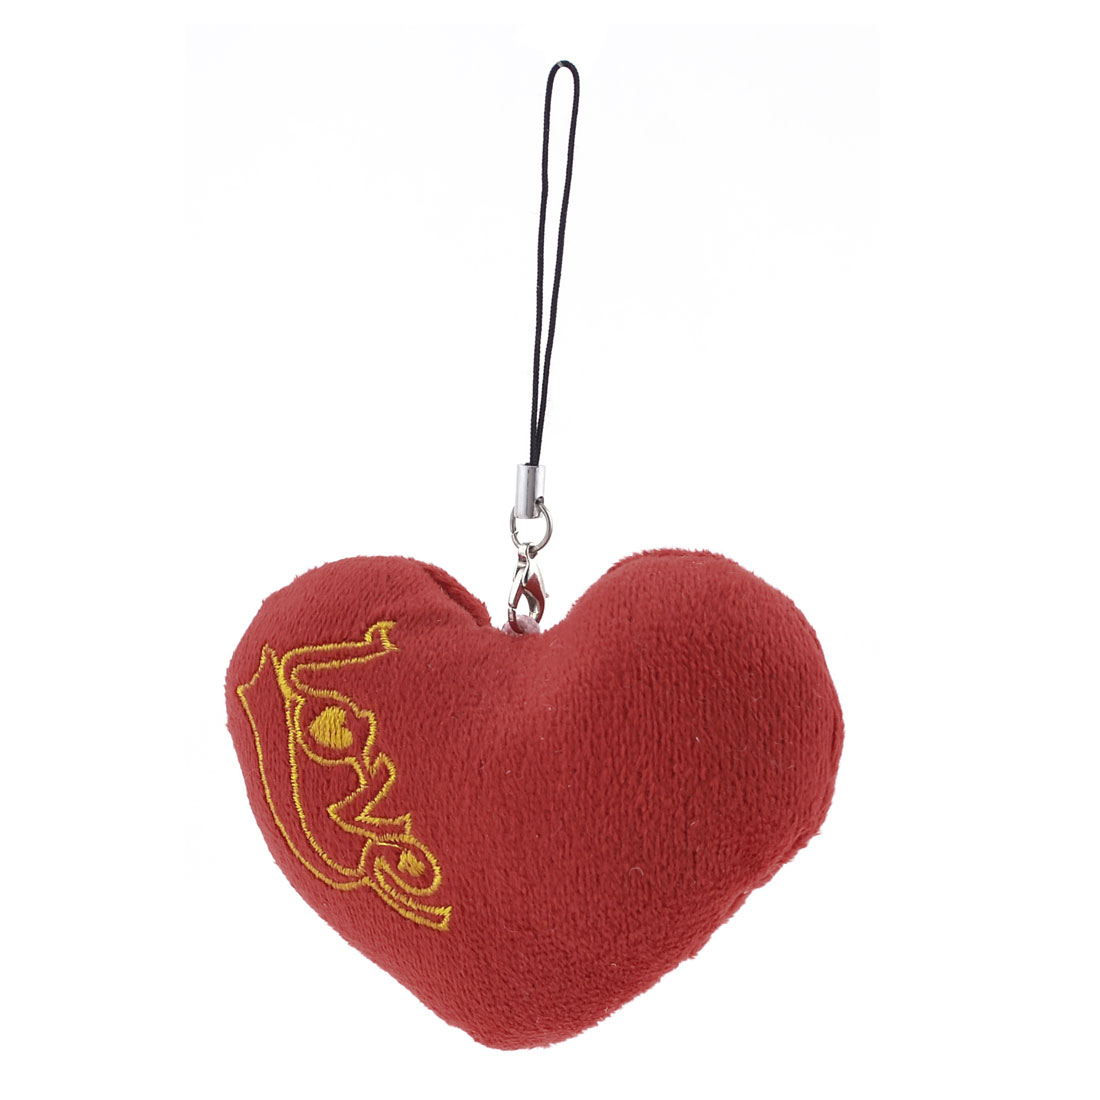 "4.7"" Length Cotton Blend Heart Shaped Pendant for Handbag"